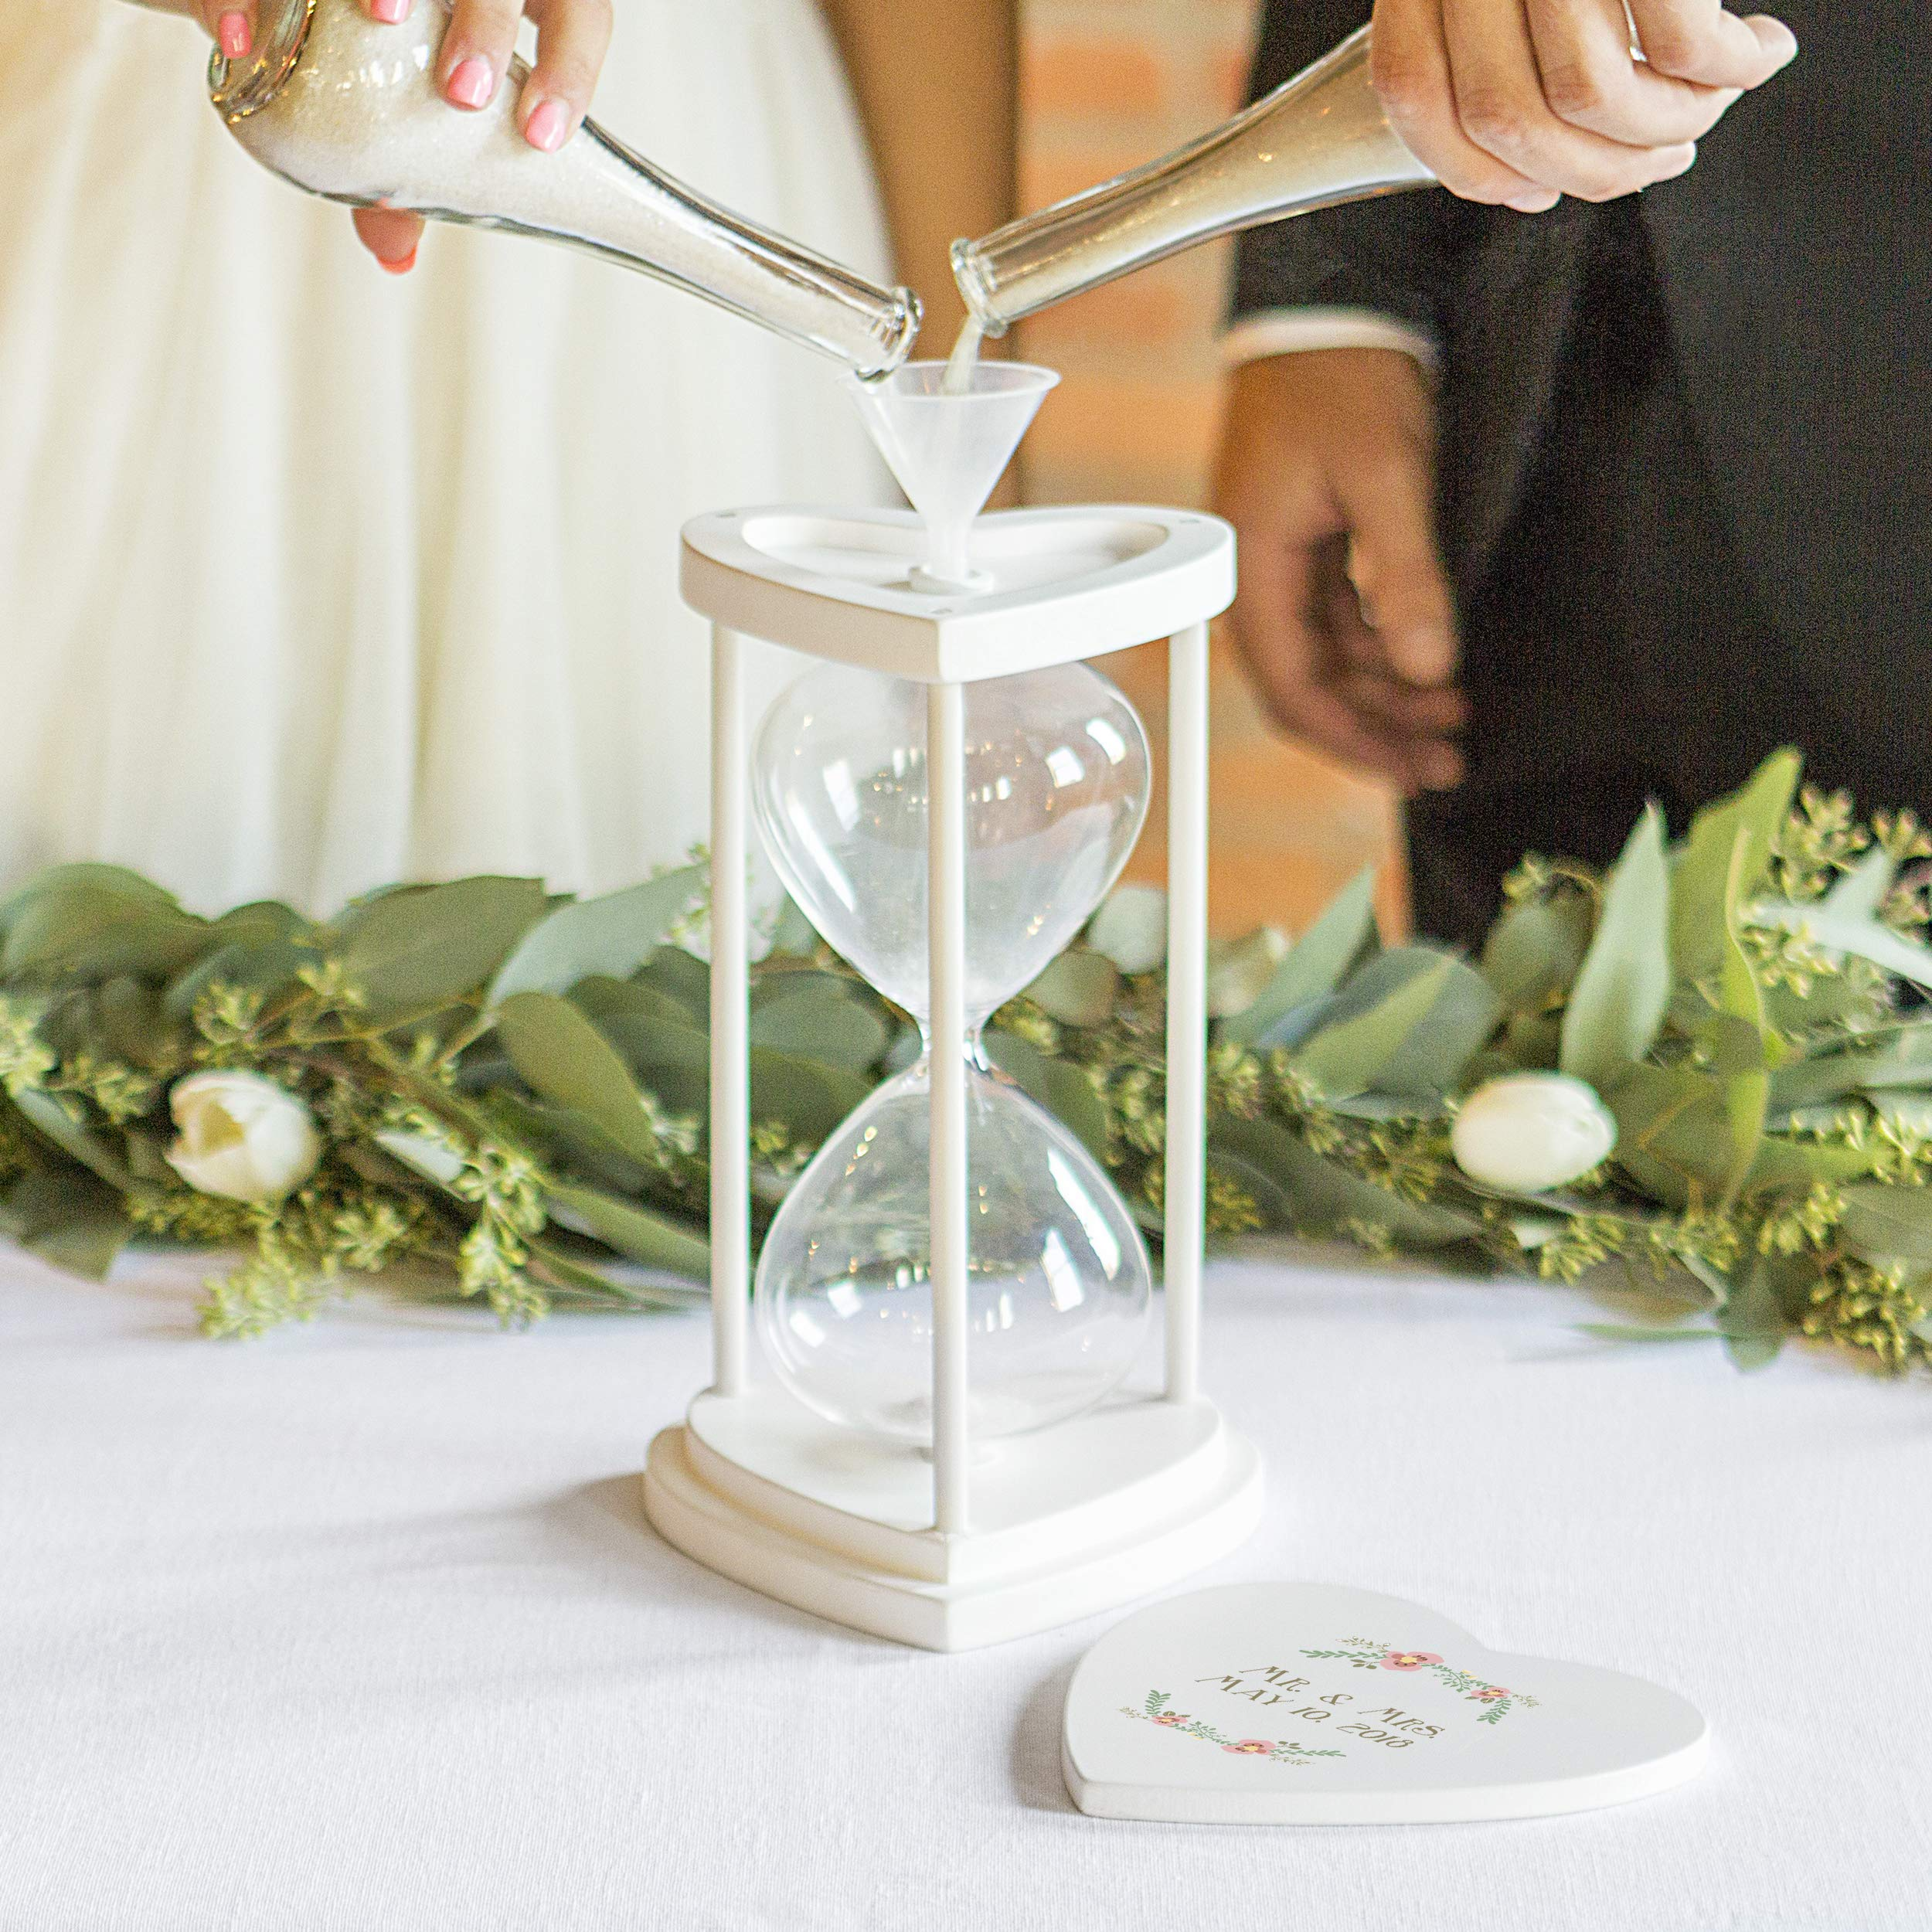 Cathy's Concepts Personalized Floral Unity Sand Ceremony Hourglass Set by Cathy's Concepts (Image #2)